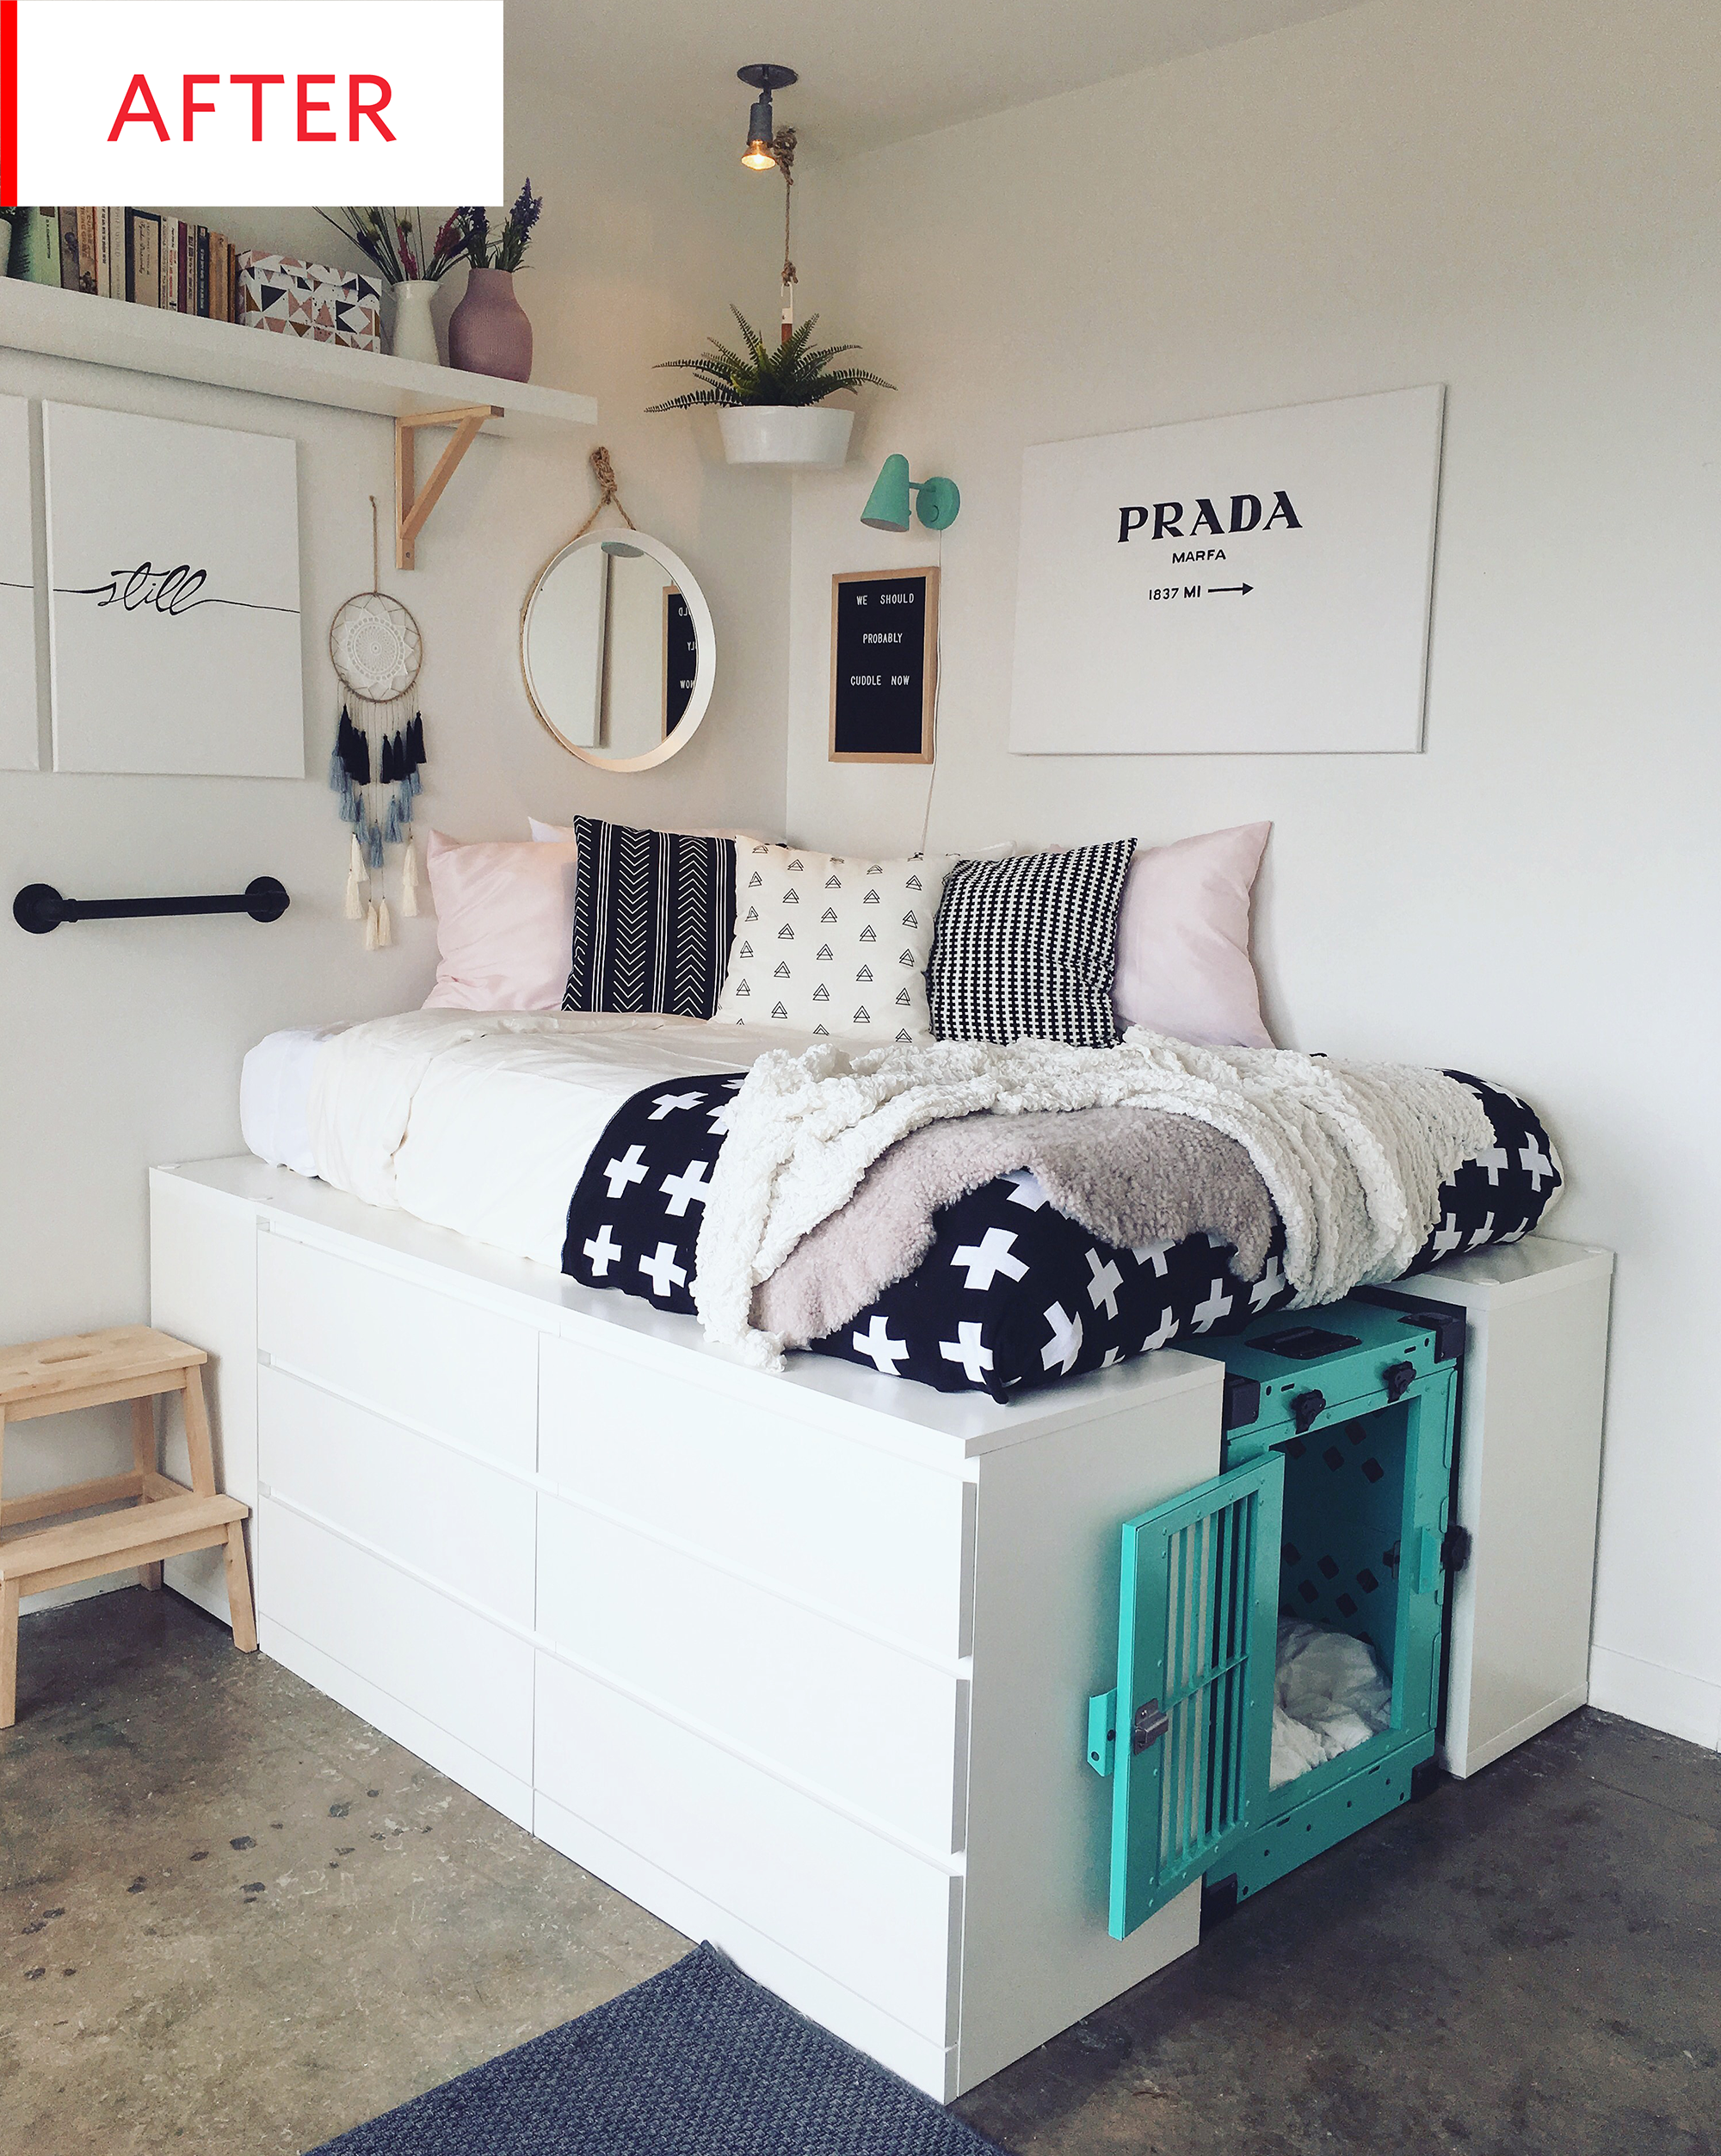 Ikea storage bed hack Cabin Bed Before And After This Makeover Comes With Multipurpose Ikea Storage Bed Hack Pinterest Surprising Multipurpose Ikea Storage Bed Hack Dream Is Wish